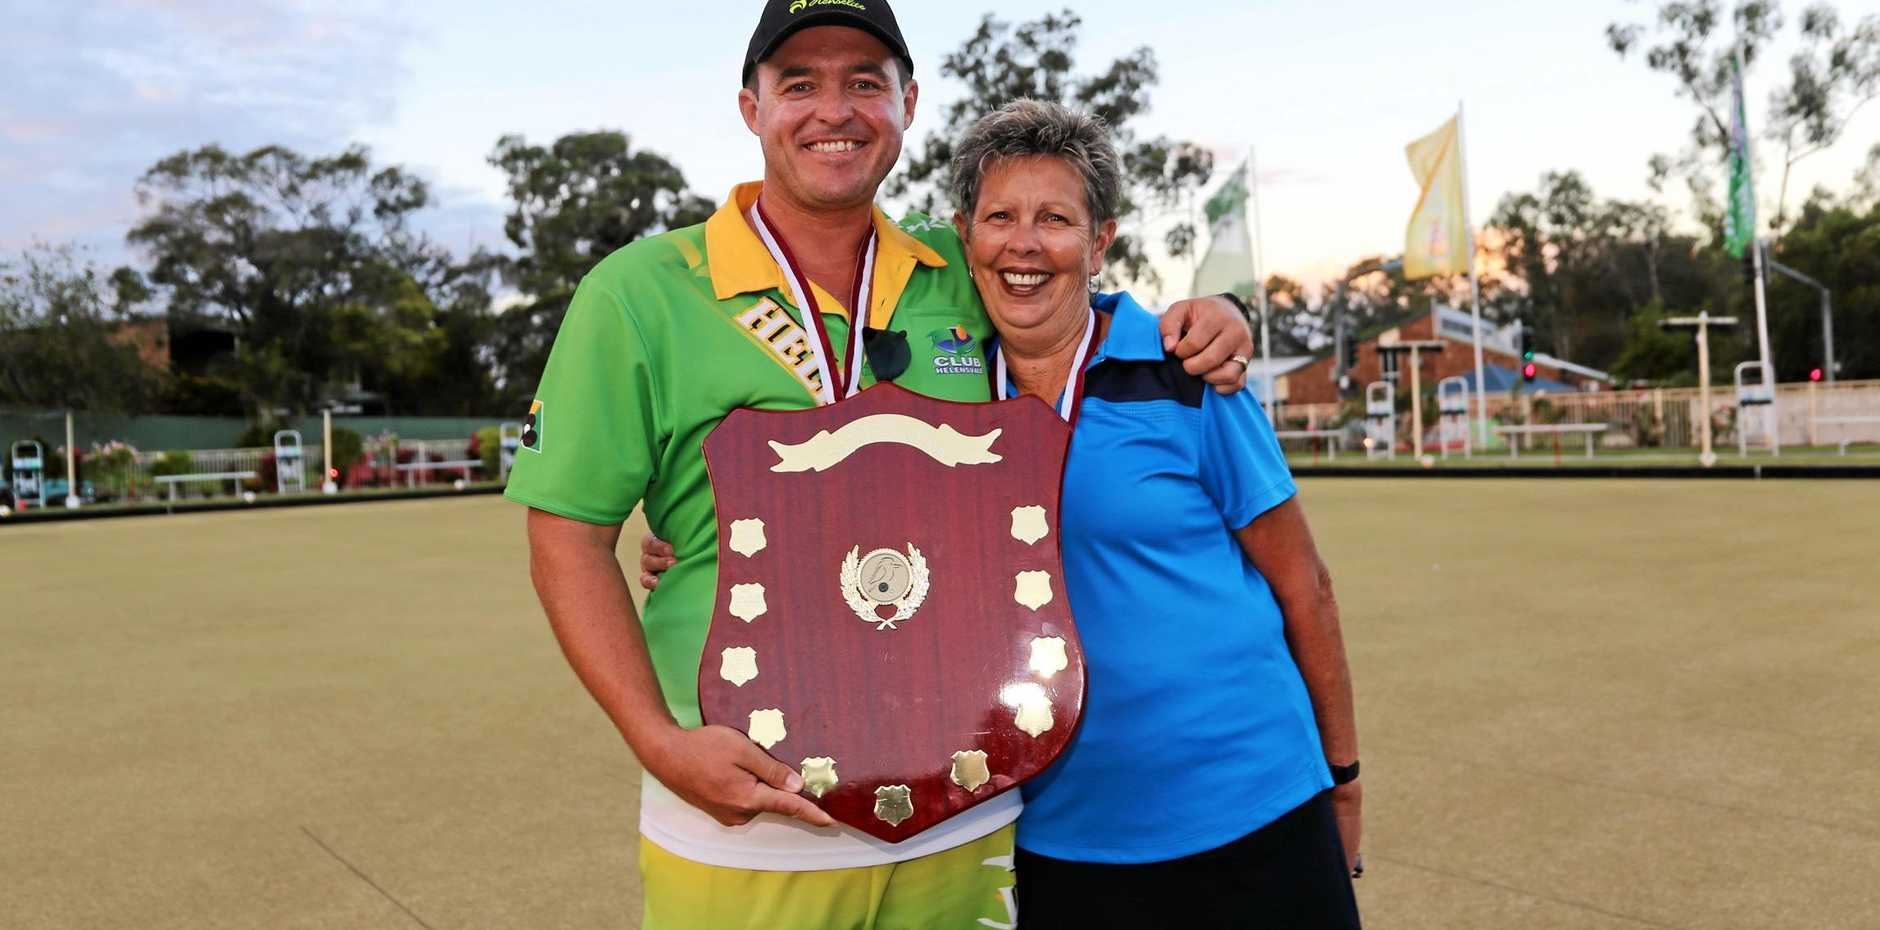 Aron Sherriff and Liz Walton won the Queensland State Mixed Pairs title. Sherrif has just won the Australian Open for a third time.